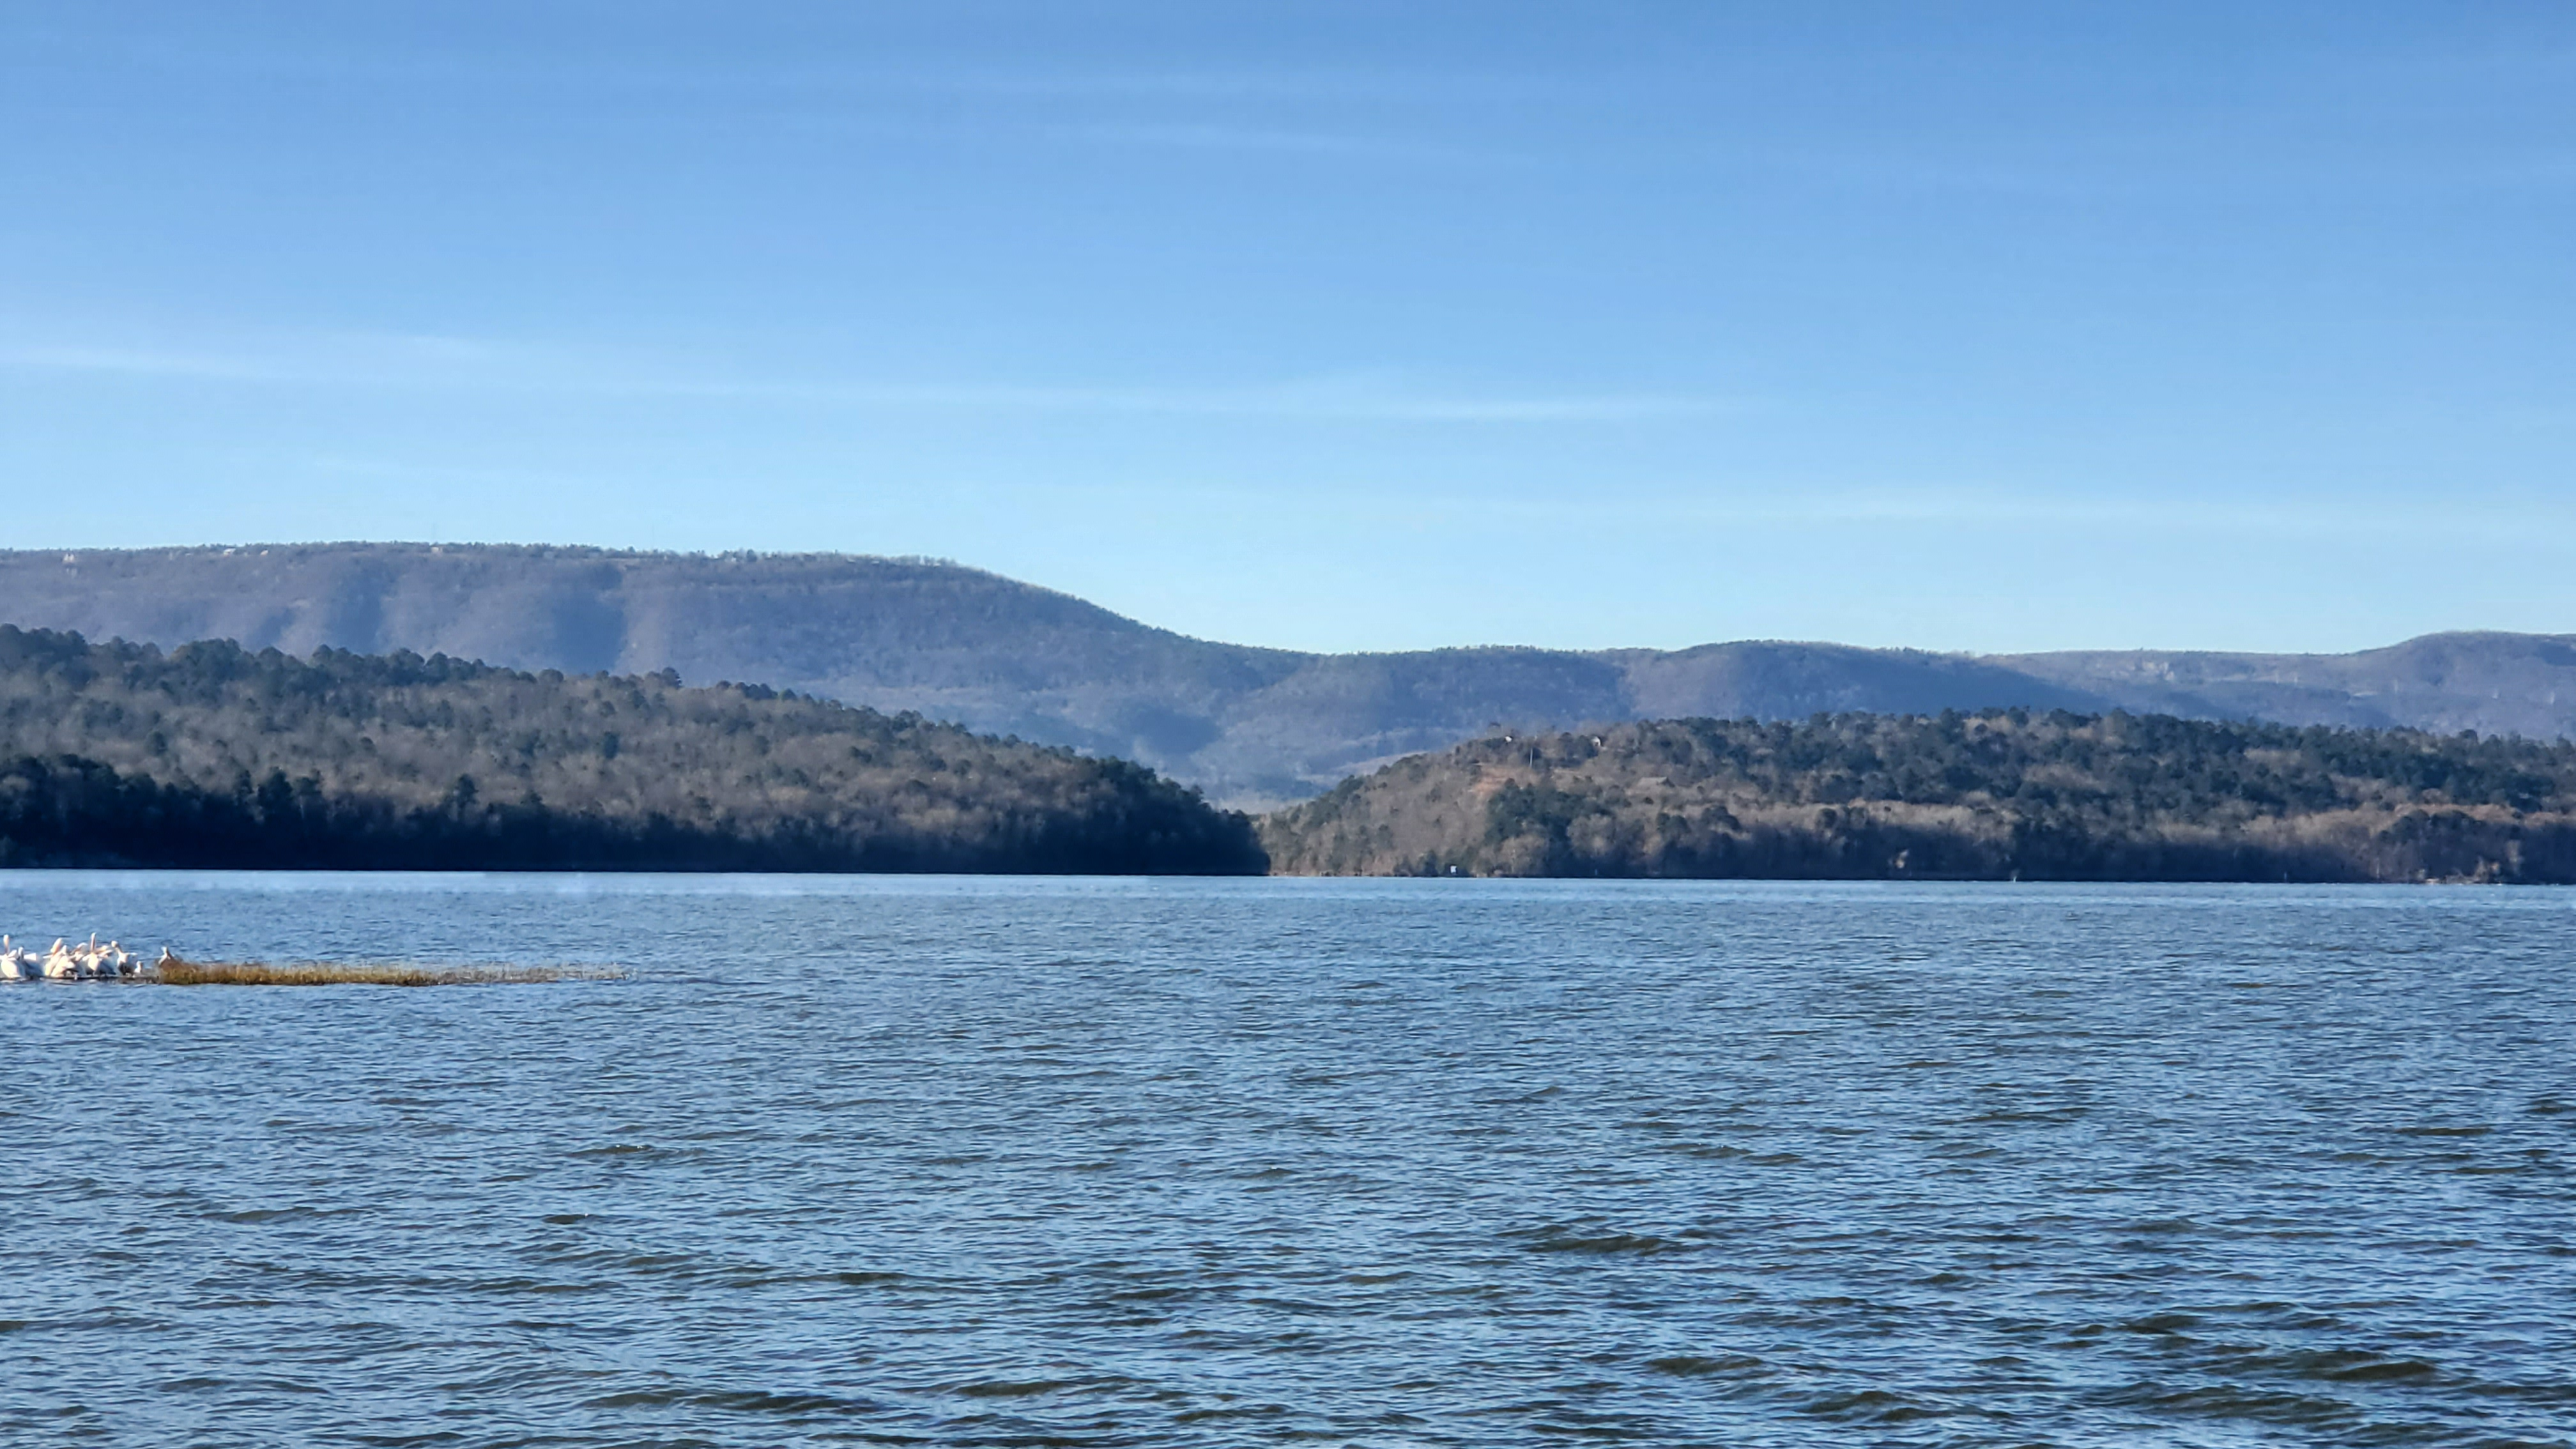 The view of the Arkansas River from the shore of Lake Dardanelle from behind the Lake Dardanelle State Park Visitor Center. Photo Courtesy of Lake Dardanelle State Park.